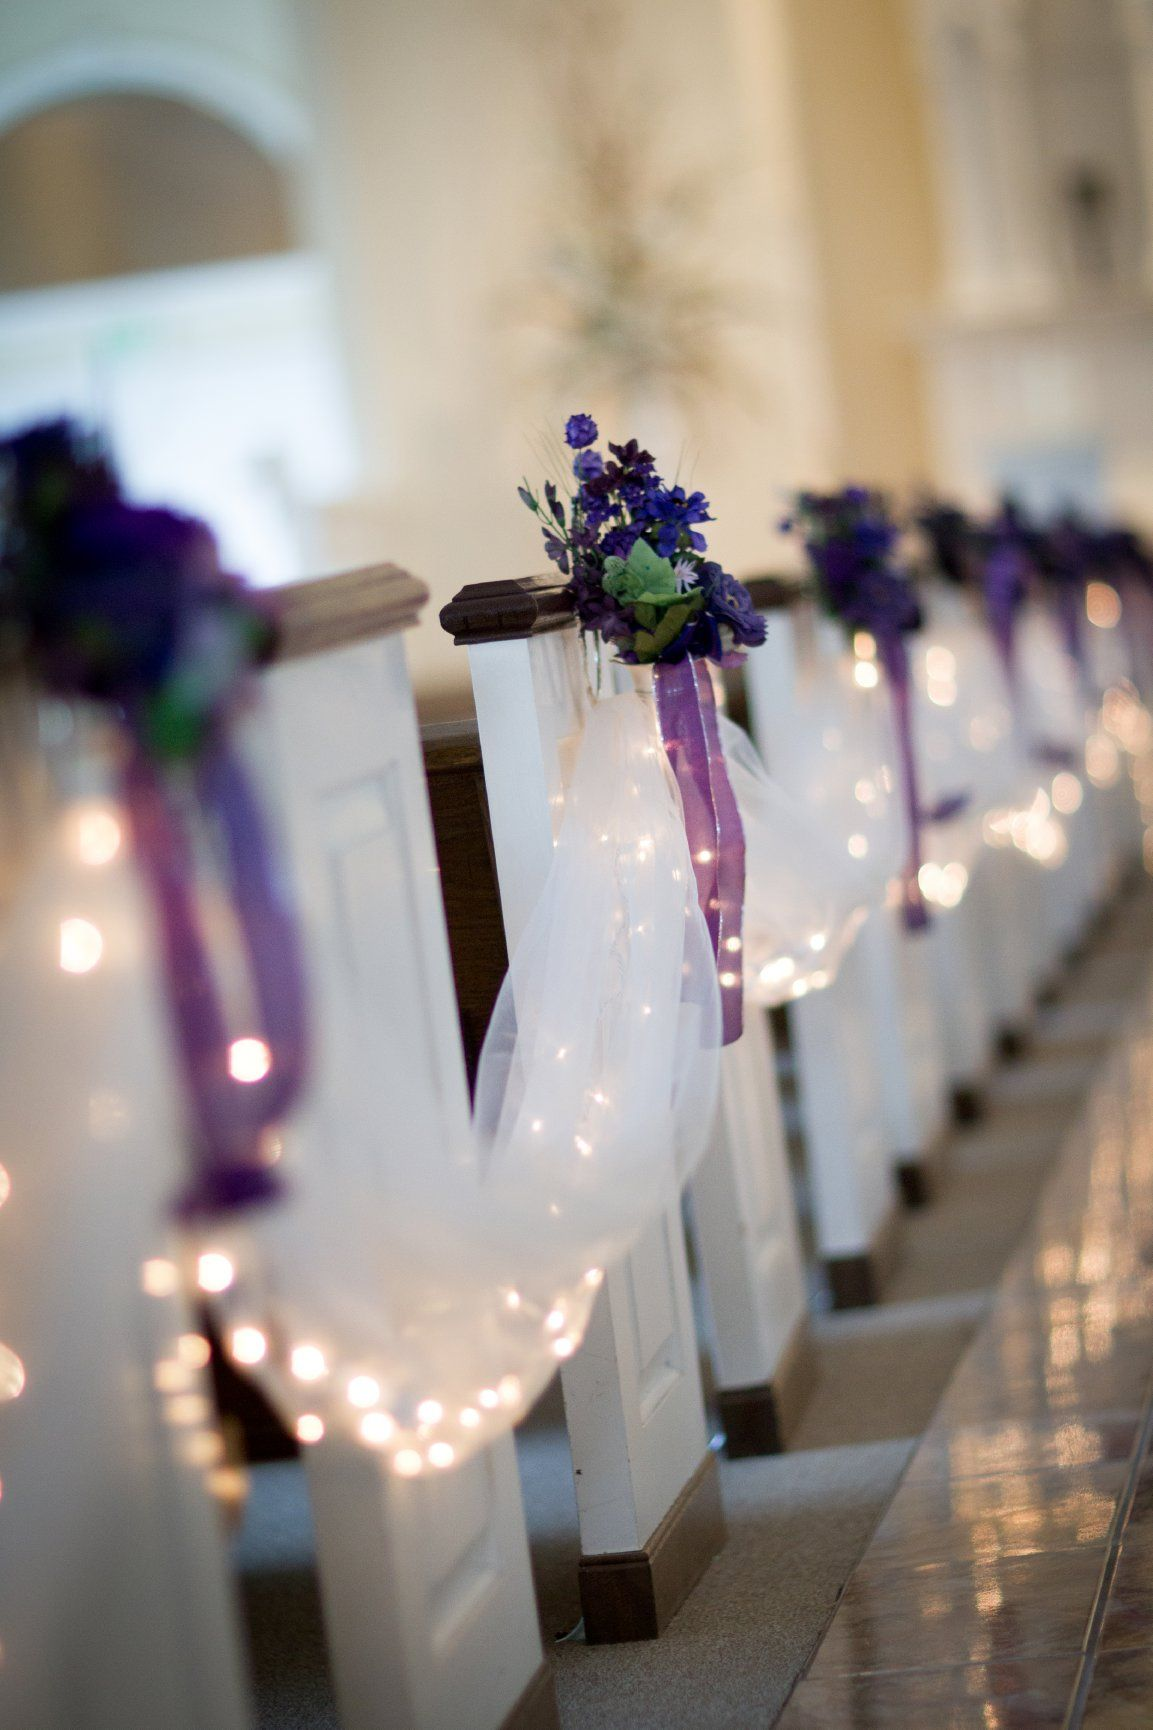 Wedding decorations tulle and lights  Chapel Ceremony Enhancements  Tulle Aisle Drape White Mini